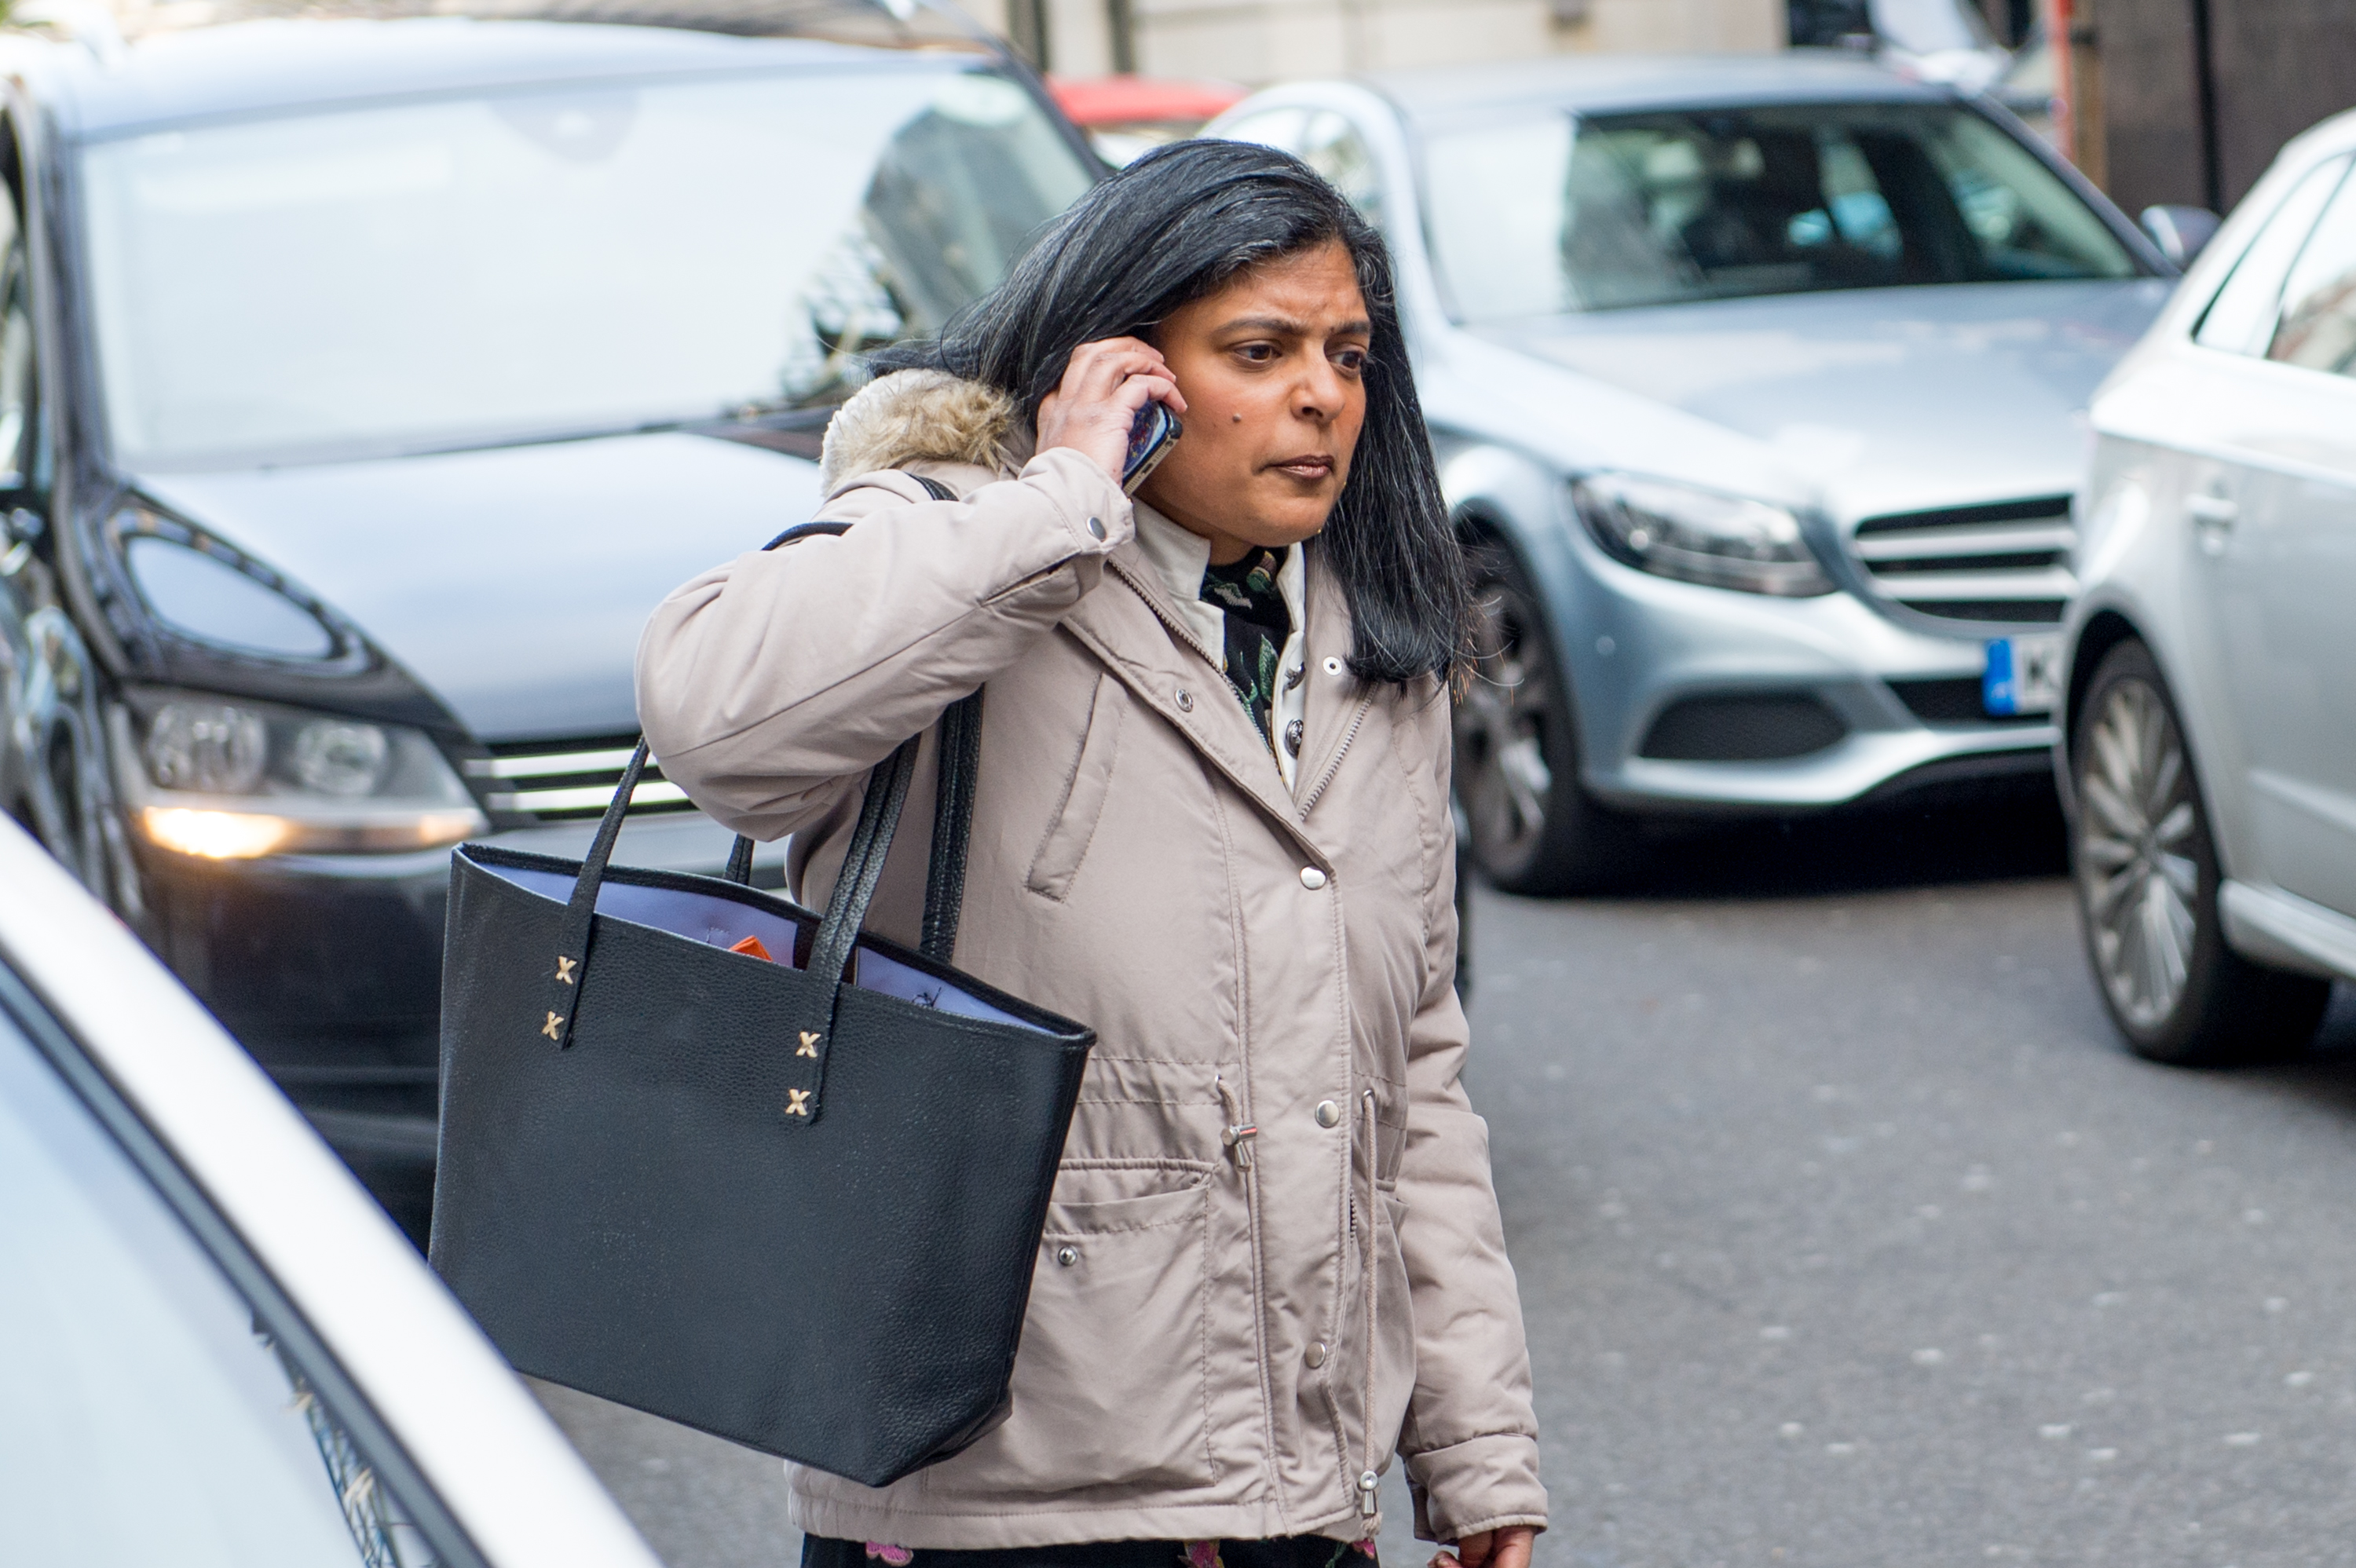 LONDON, ENGLAND - NOVEMBER 17:Rupa Huq MP attempts to get a taxi to leave the BBC while being followed by anti semitism activists before having to go inside to get away from their cameras at BBC Broadcasting House on November 17, 2019 in London, England. (Photo by Ollie Millington/Getty Images)